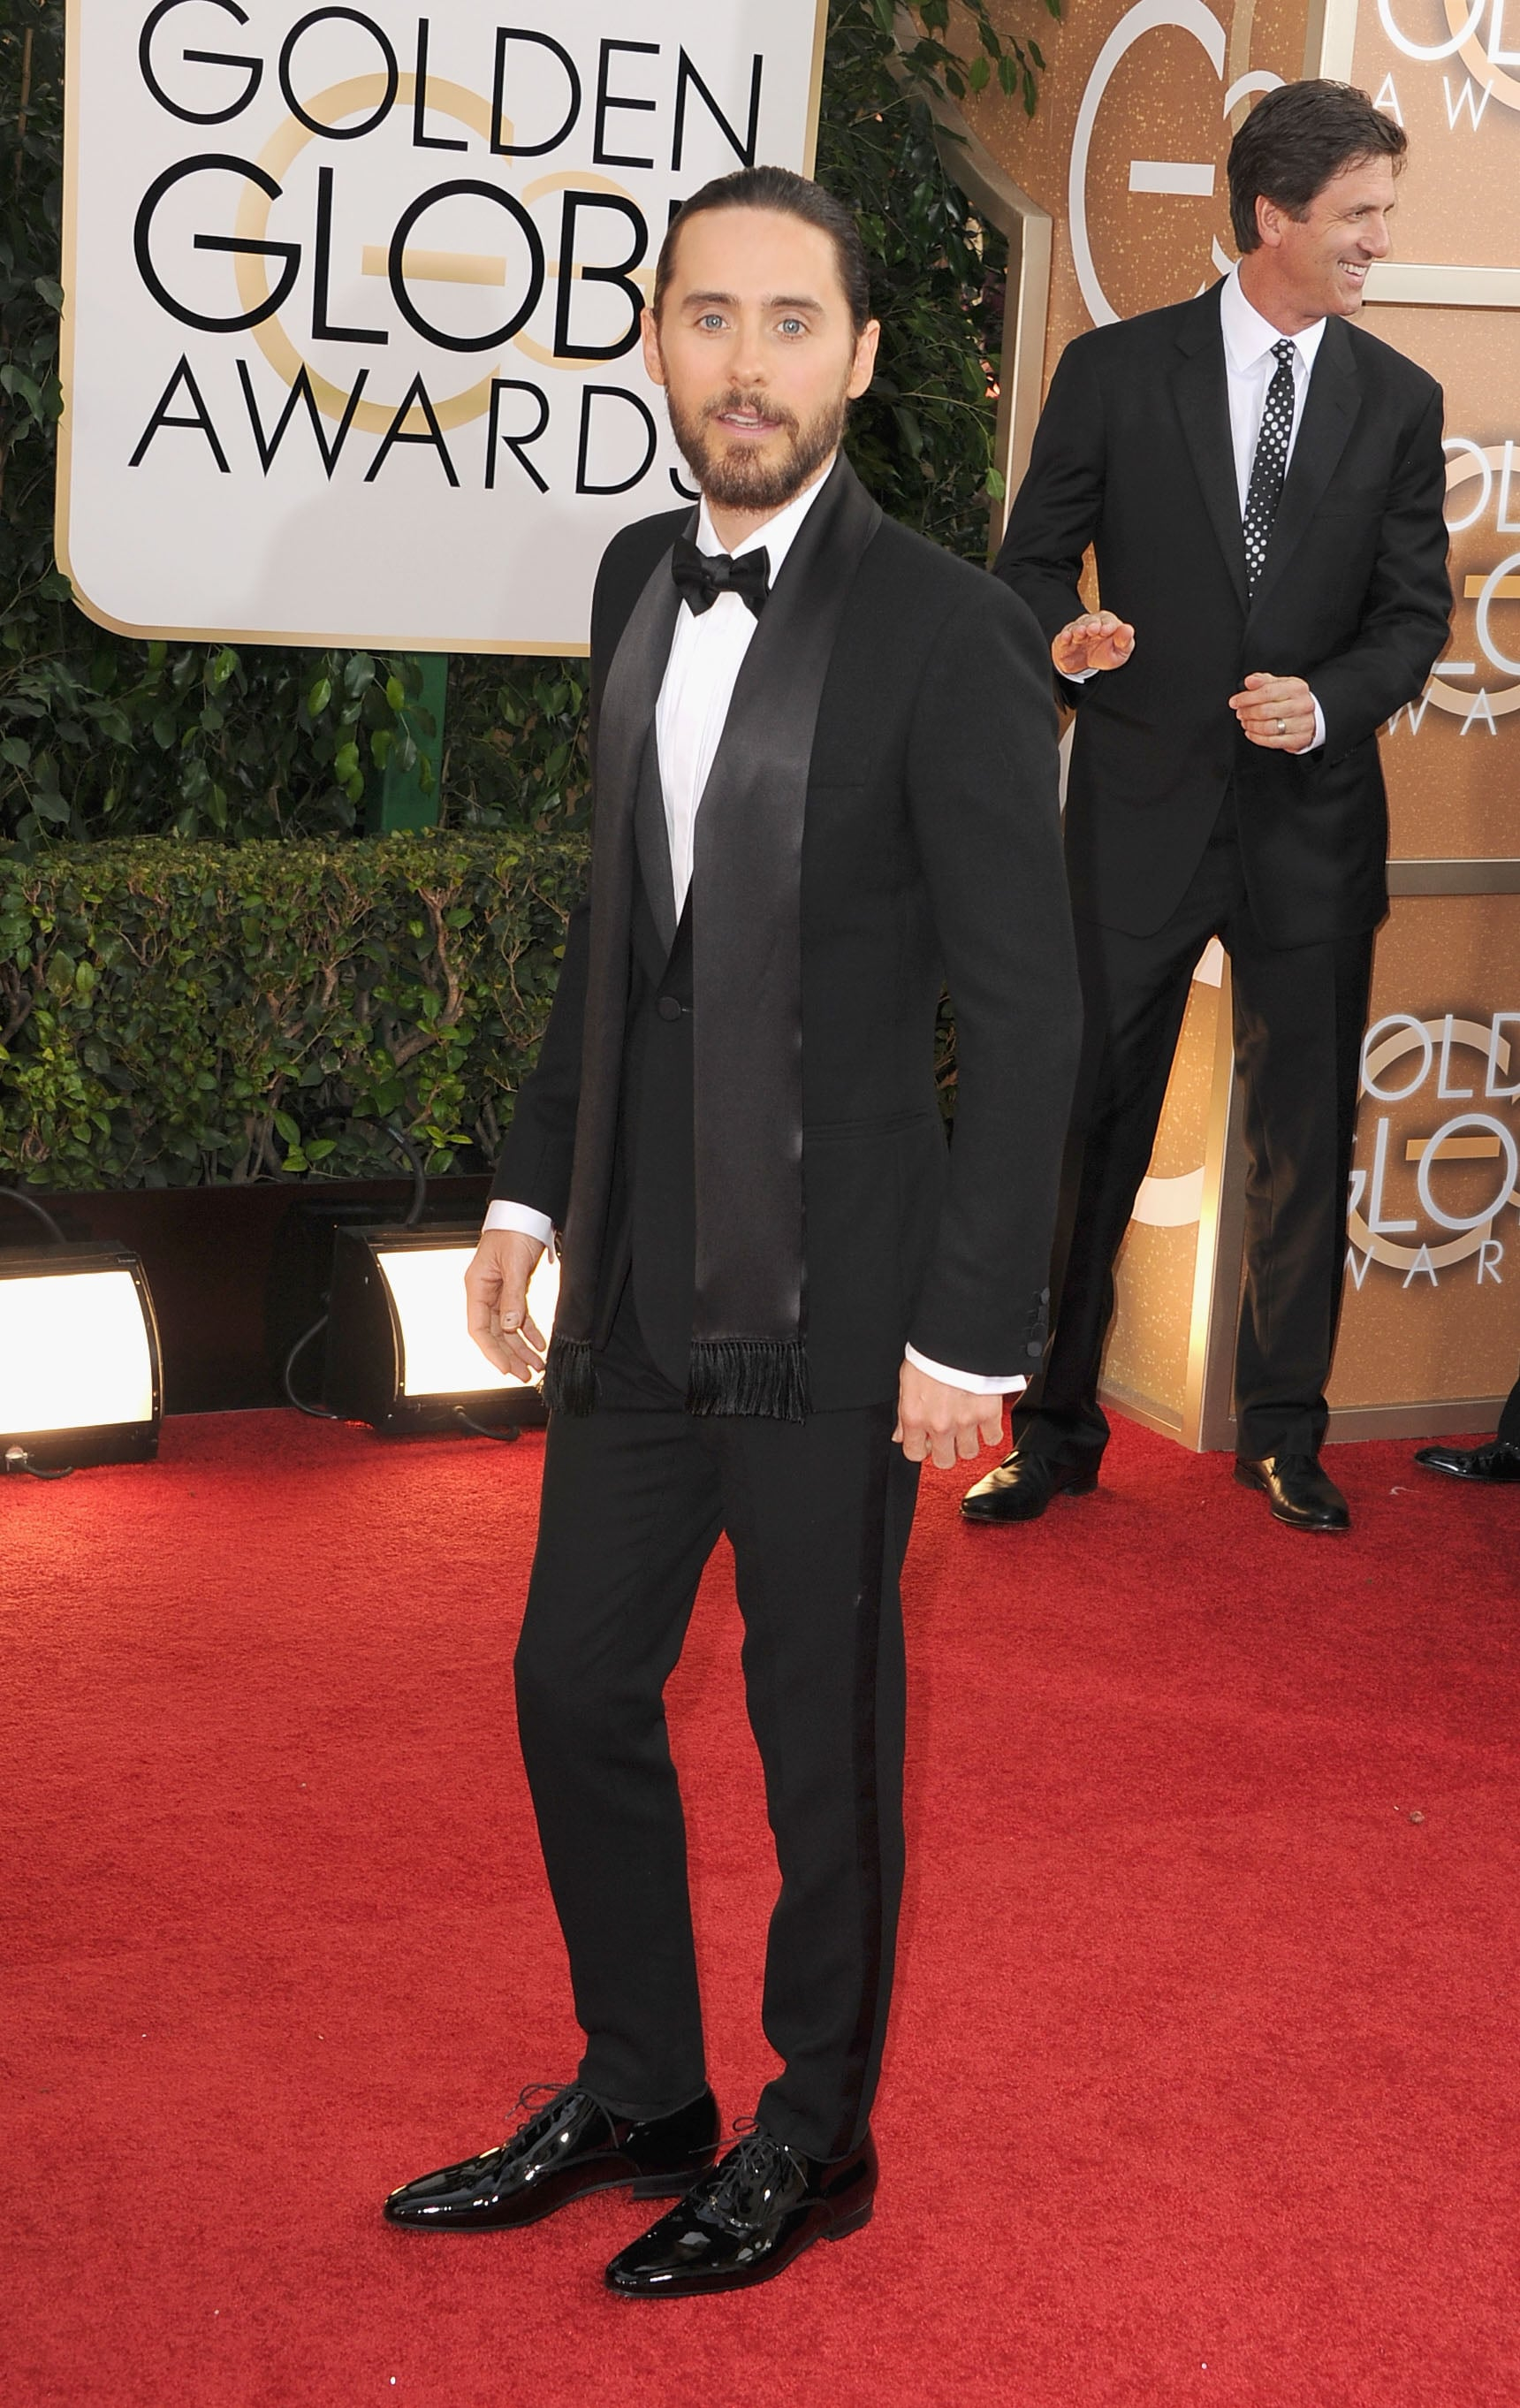 Jared Leto looked handsome on the red carpet.